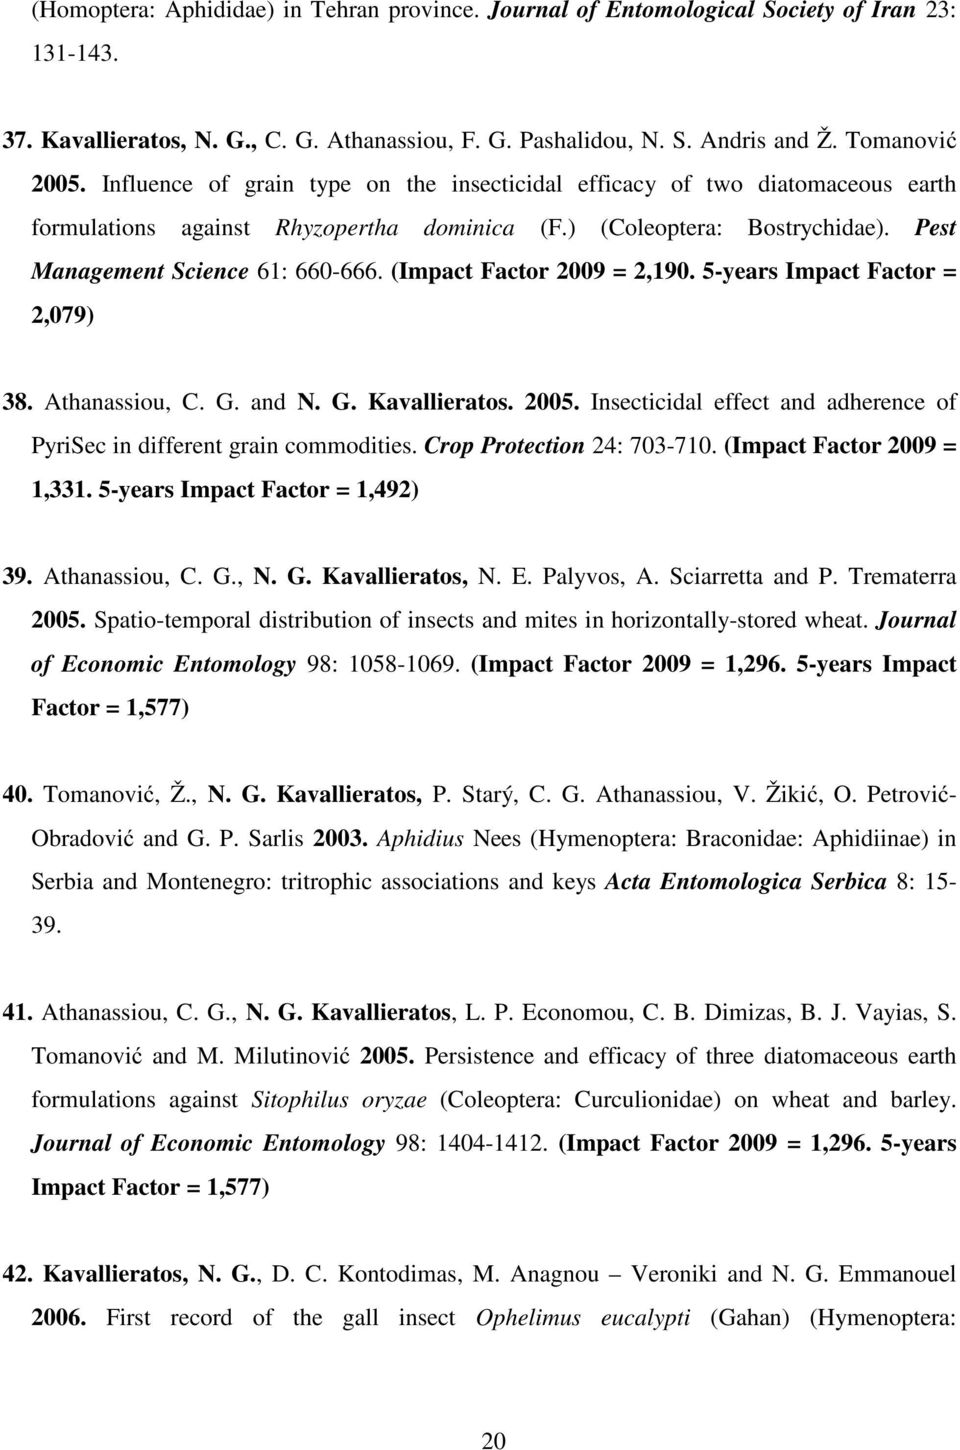 (Impact Factor 2009 = 2,190. 5-years Impact Factor = 2,079) 38. Athanassiou, C. G. and N. G. Kavallieratos. 2005. Insecticidal effect and adherence of PyriSec in different grain commodities.